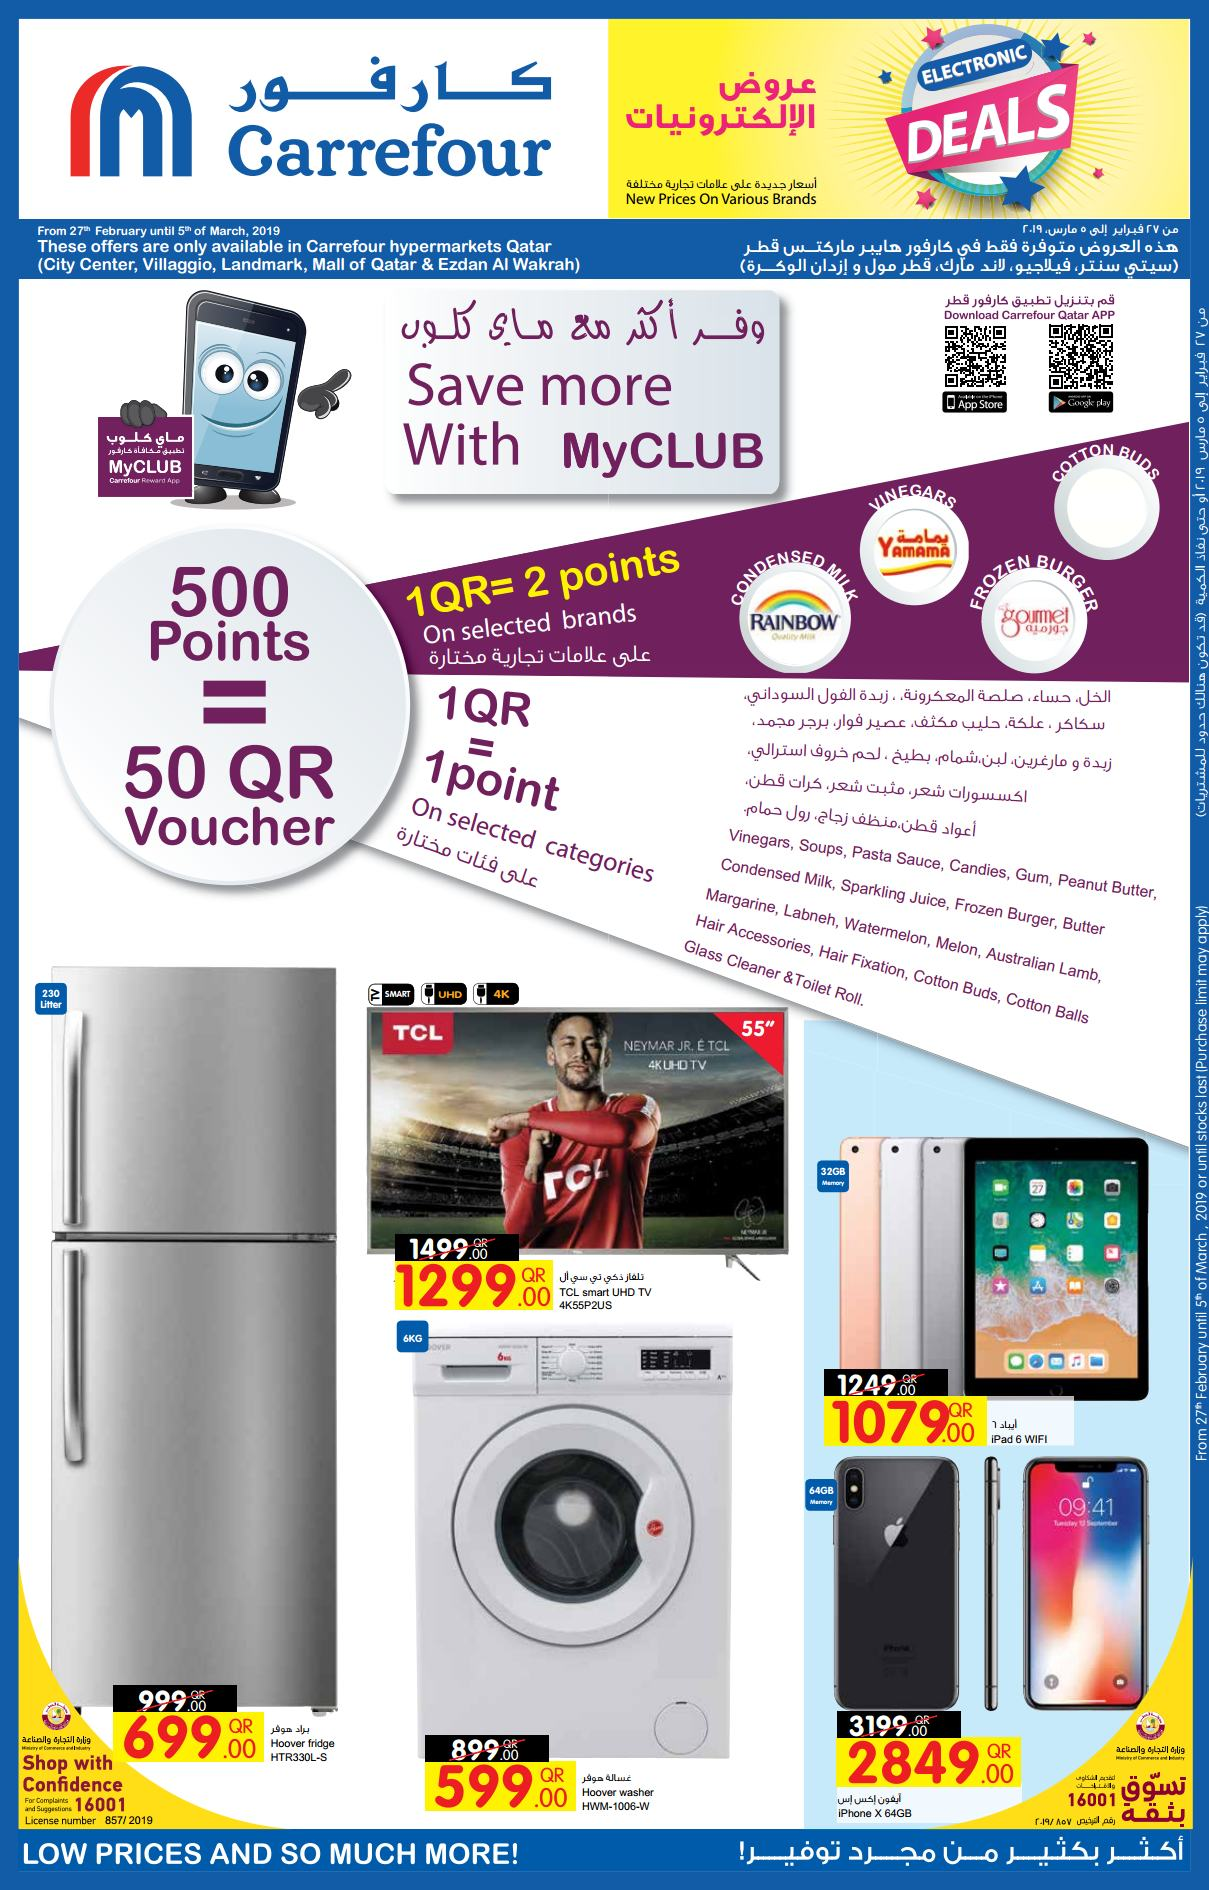 Carrefour Hypermarket Offer till 03-05